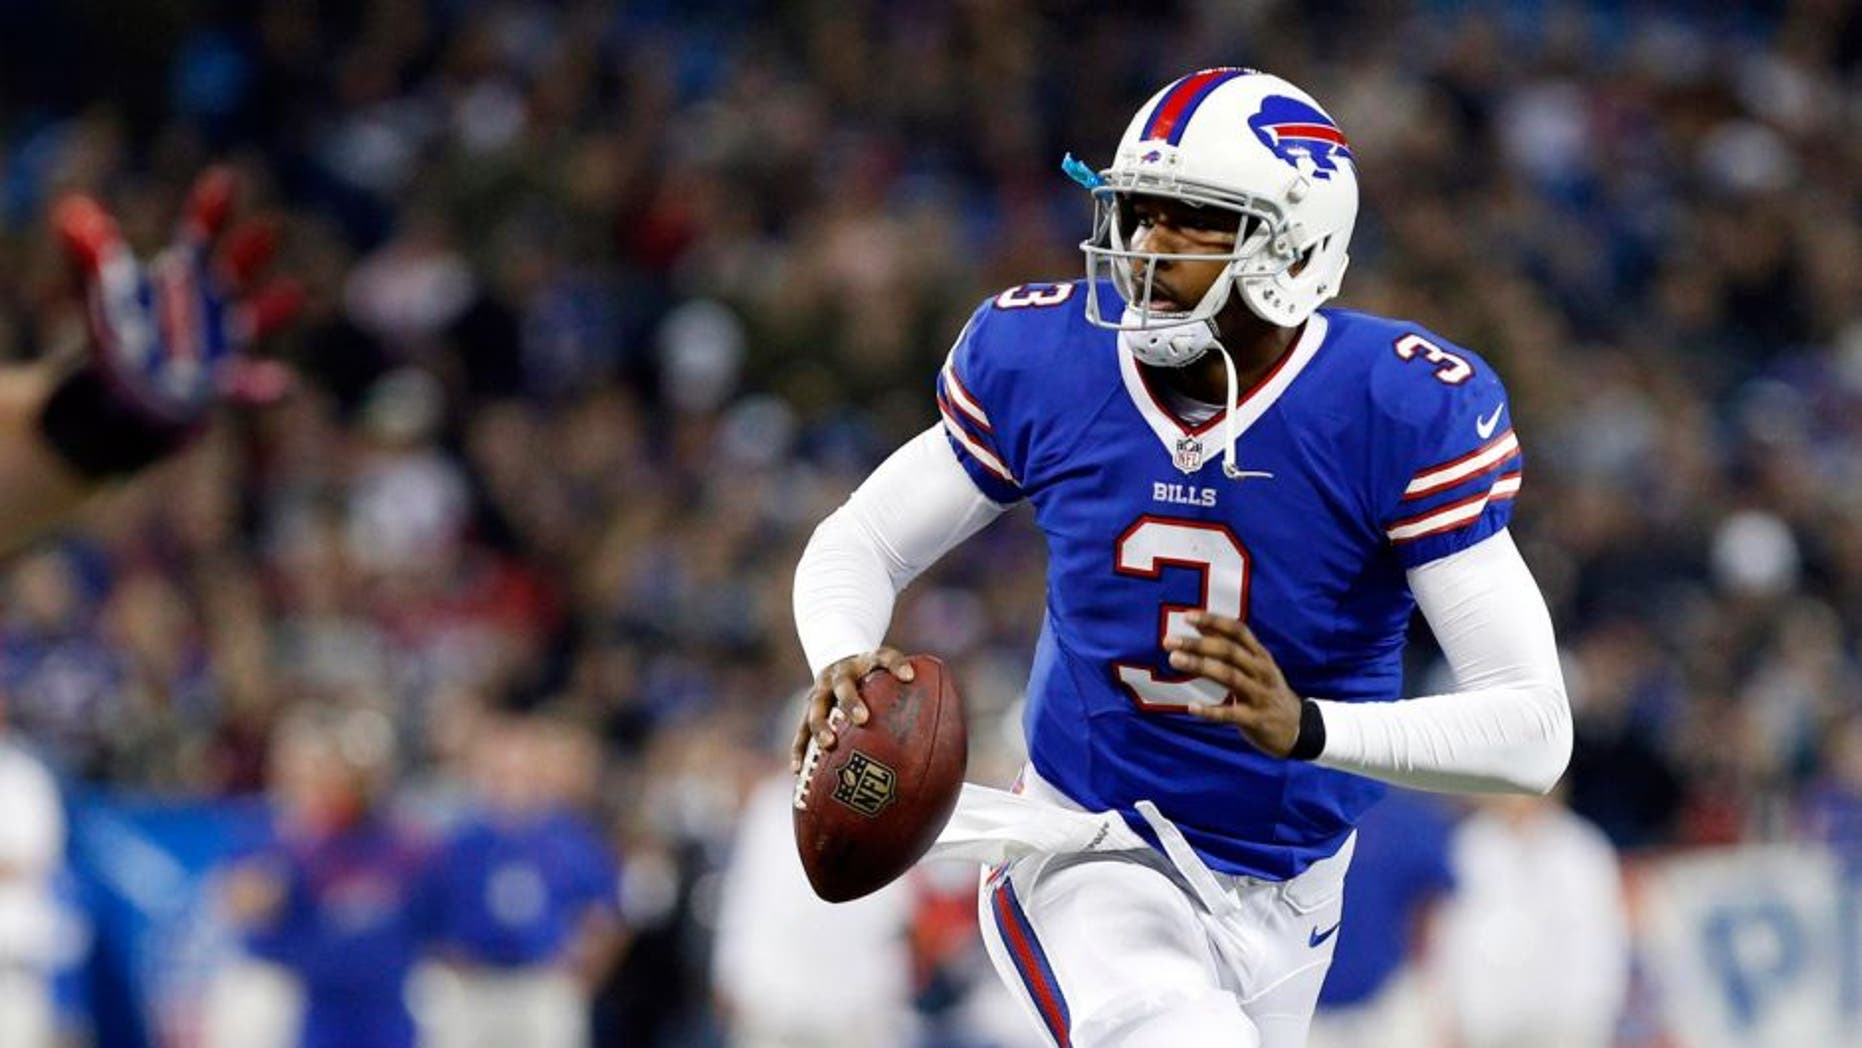 Dec 1, 2013; Toronto, ON, Canada; Buffalo Bills quarterback EJ Manuel (3) rolls out during the first half against the Atlanta Falcons at the Rogers Center. Mandatory Credit: Kevin Hoffman-USA TODAY Sports